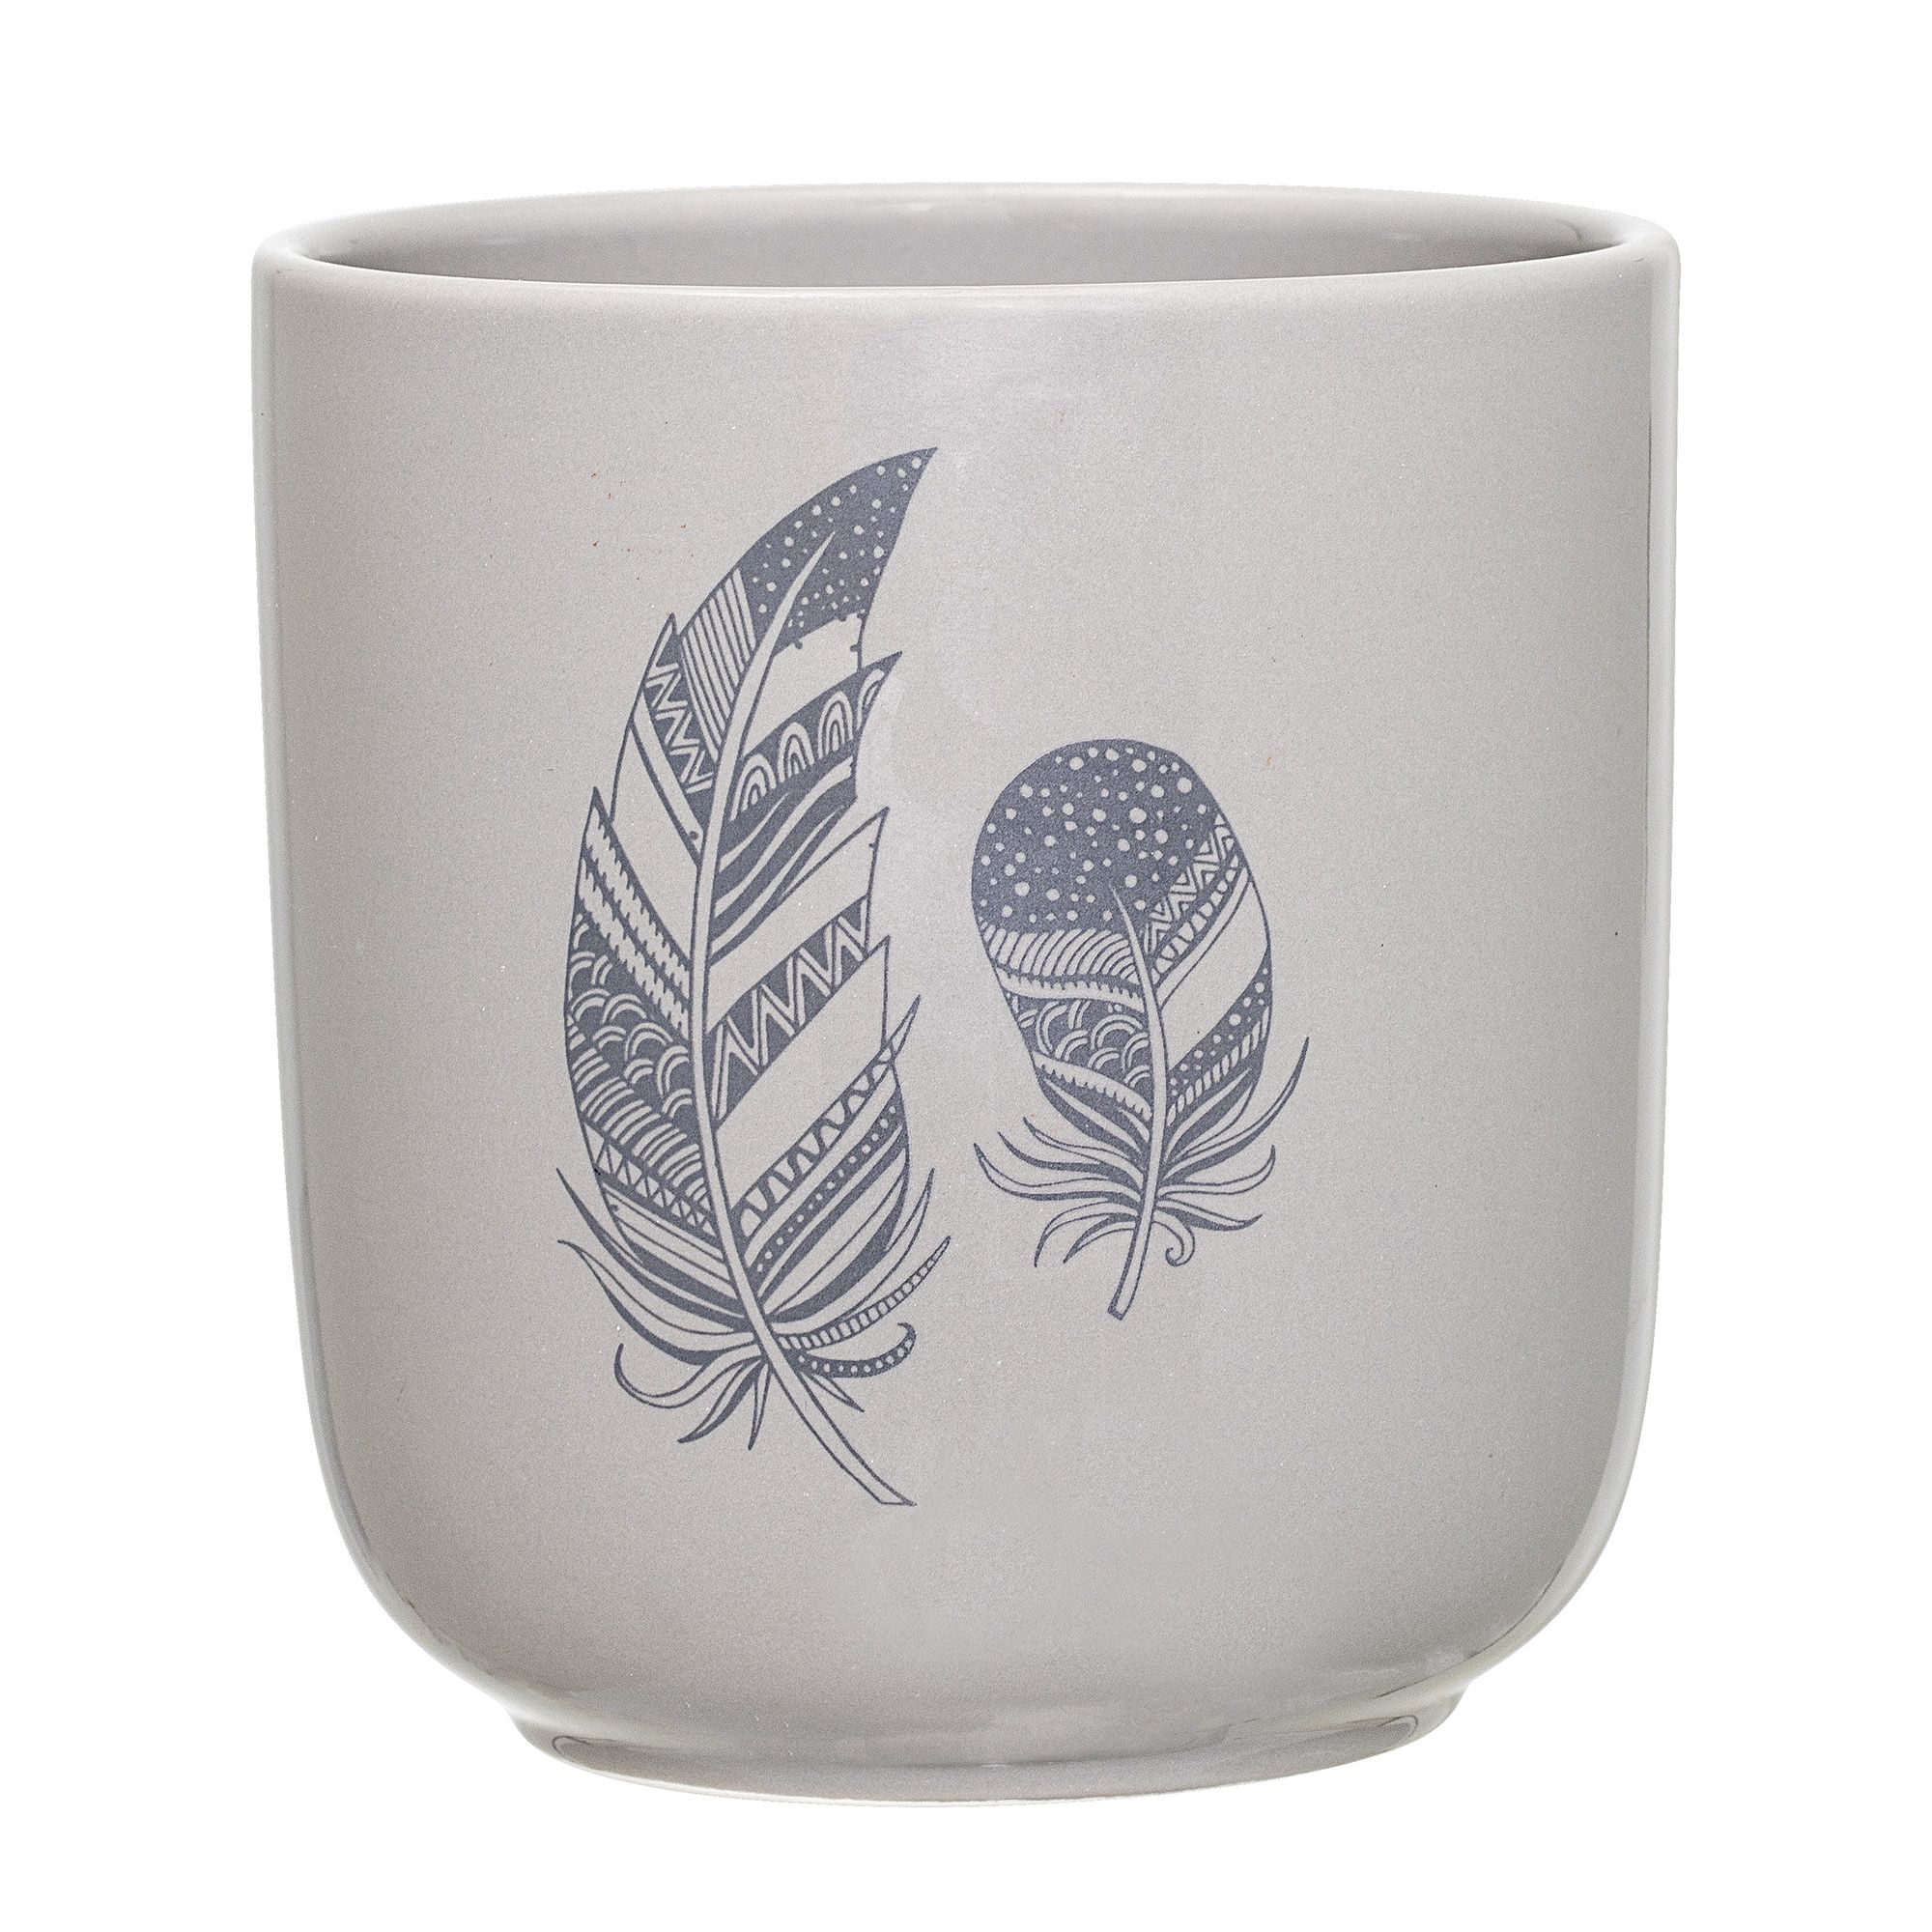 Cute cup for Easter <3 Design by Bloomingville